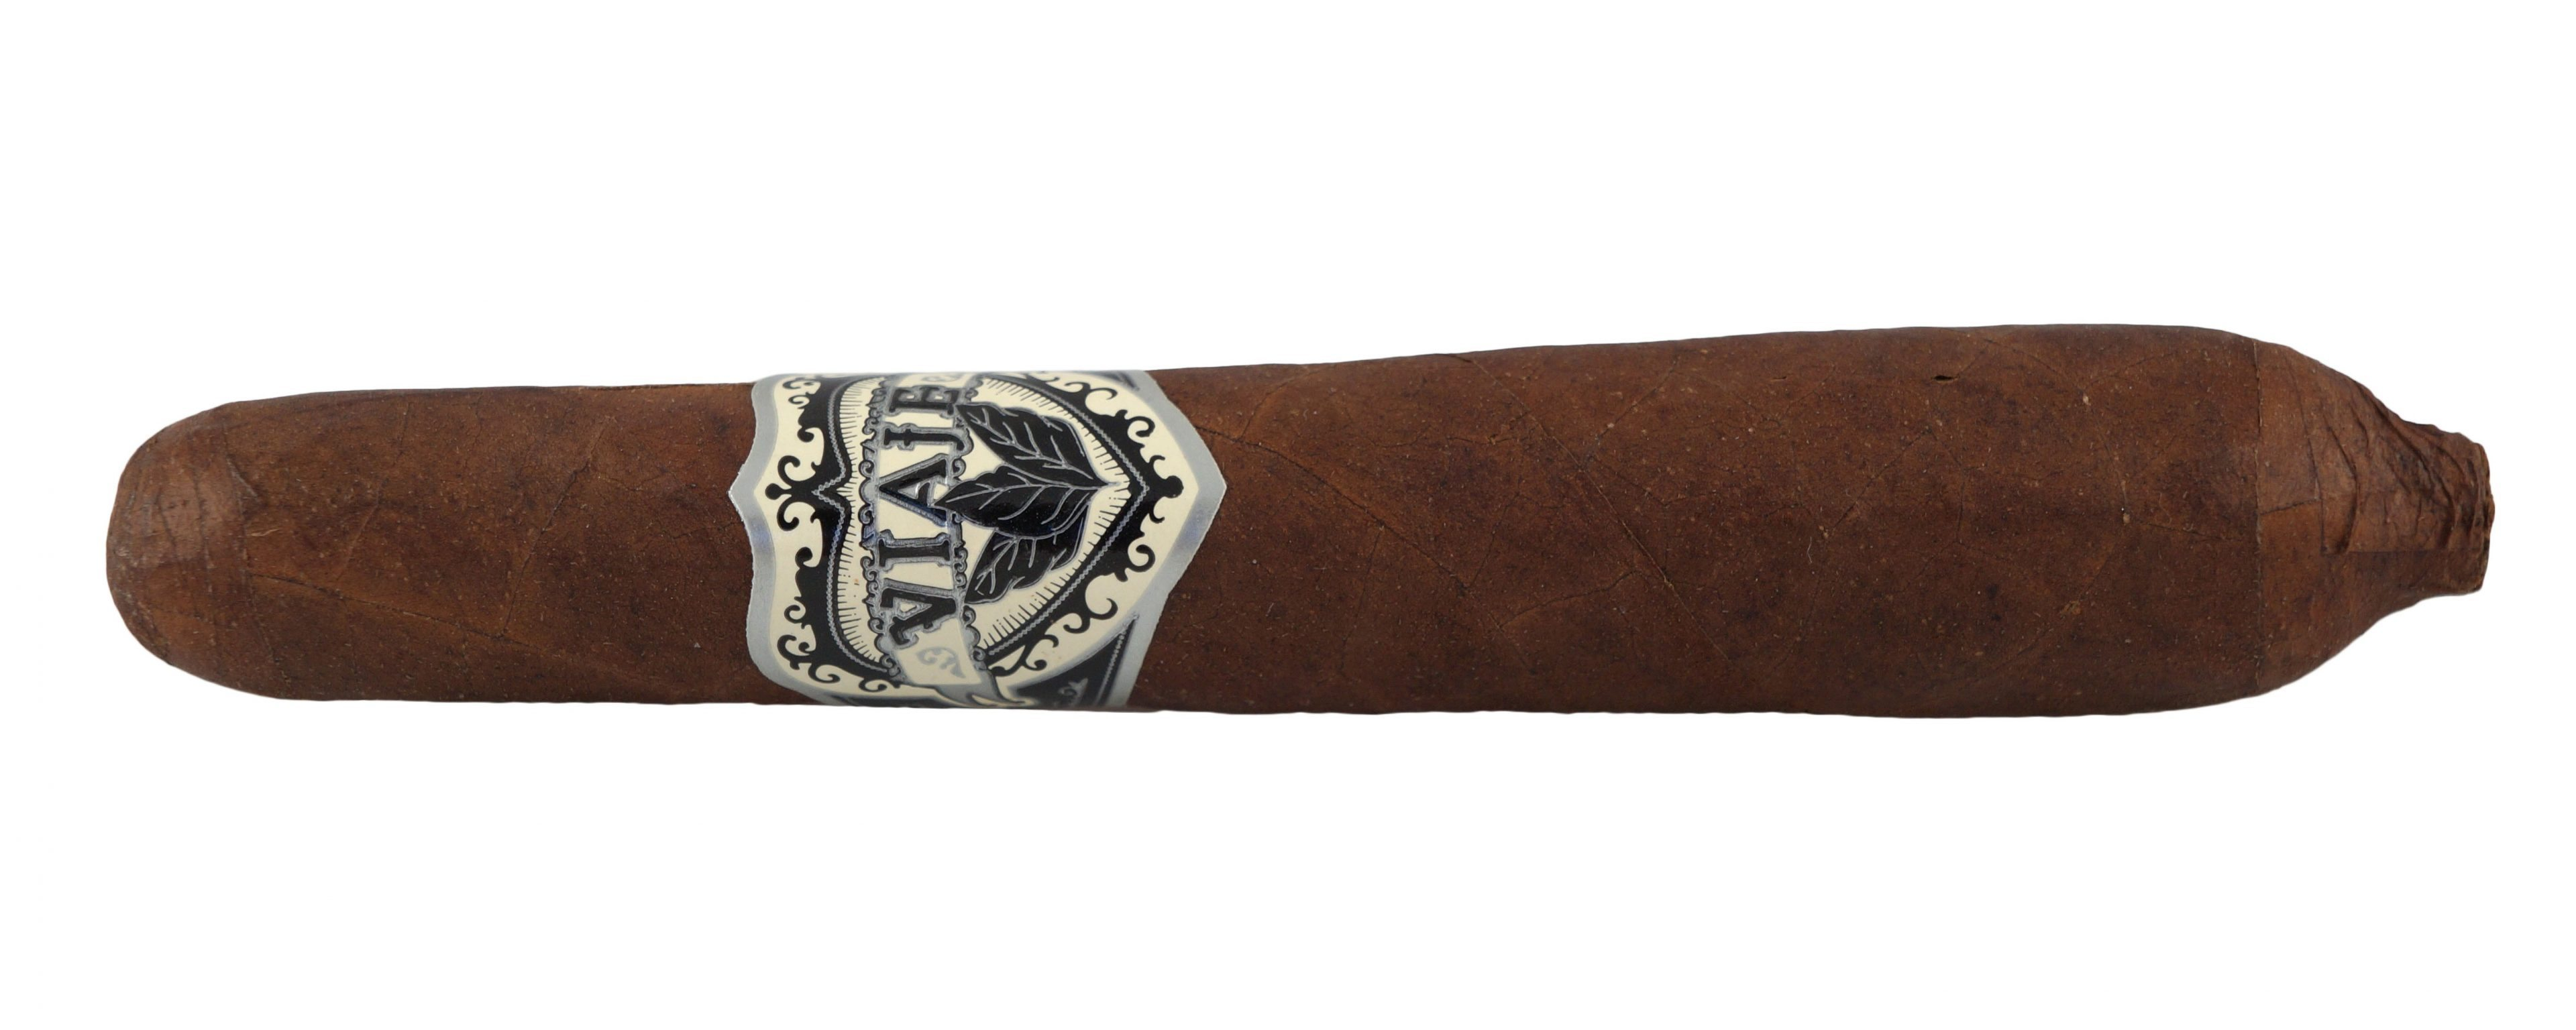 Blind Cigar Review: Viaje | Exclusivo Chiquito Perfecto